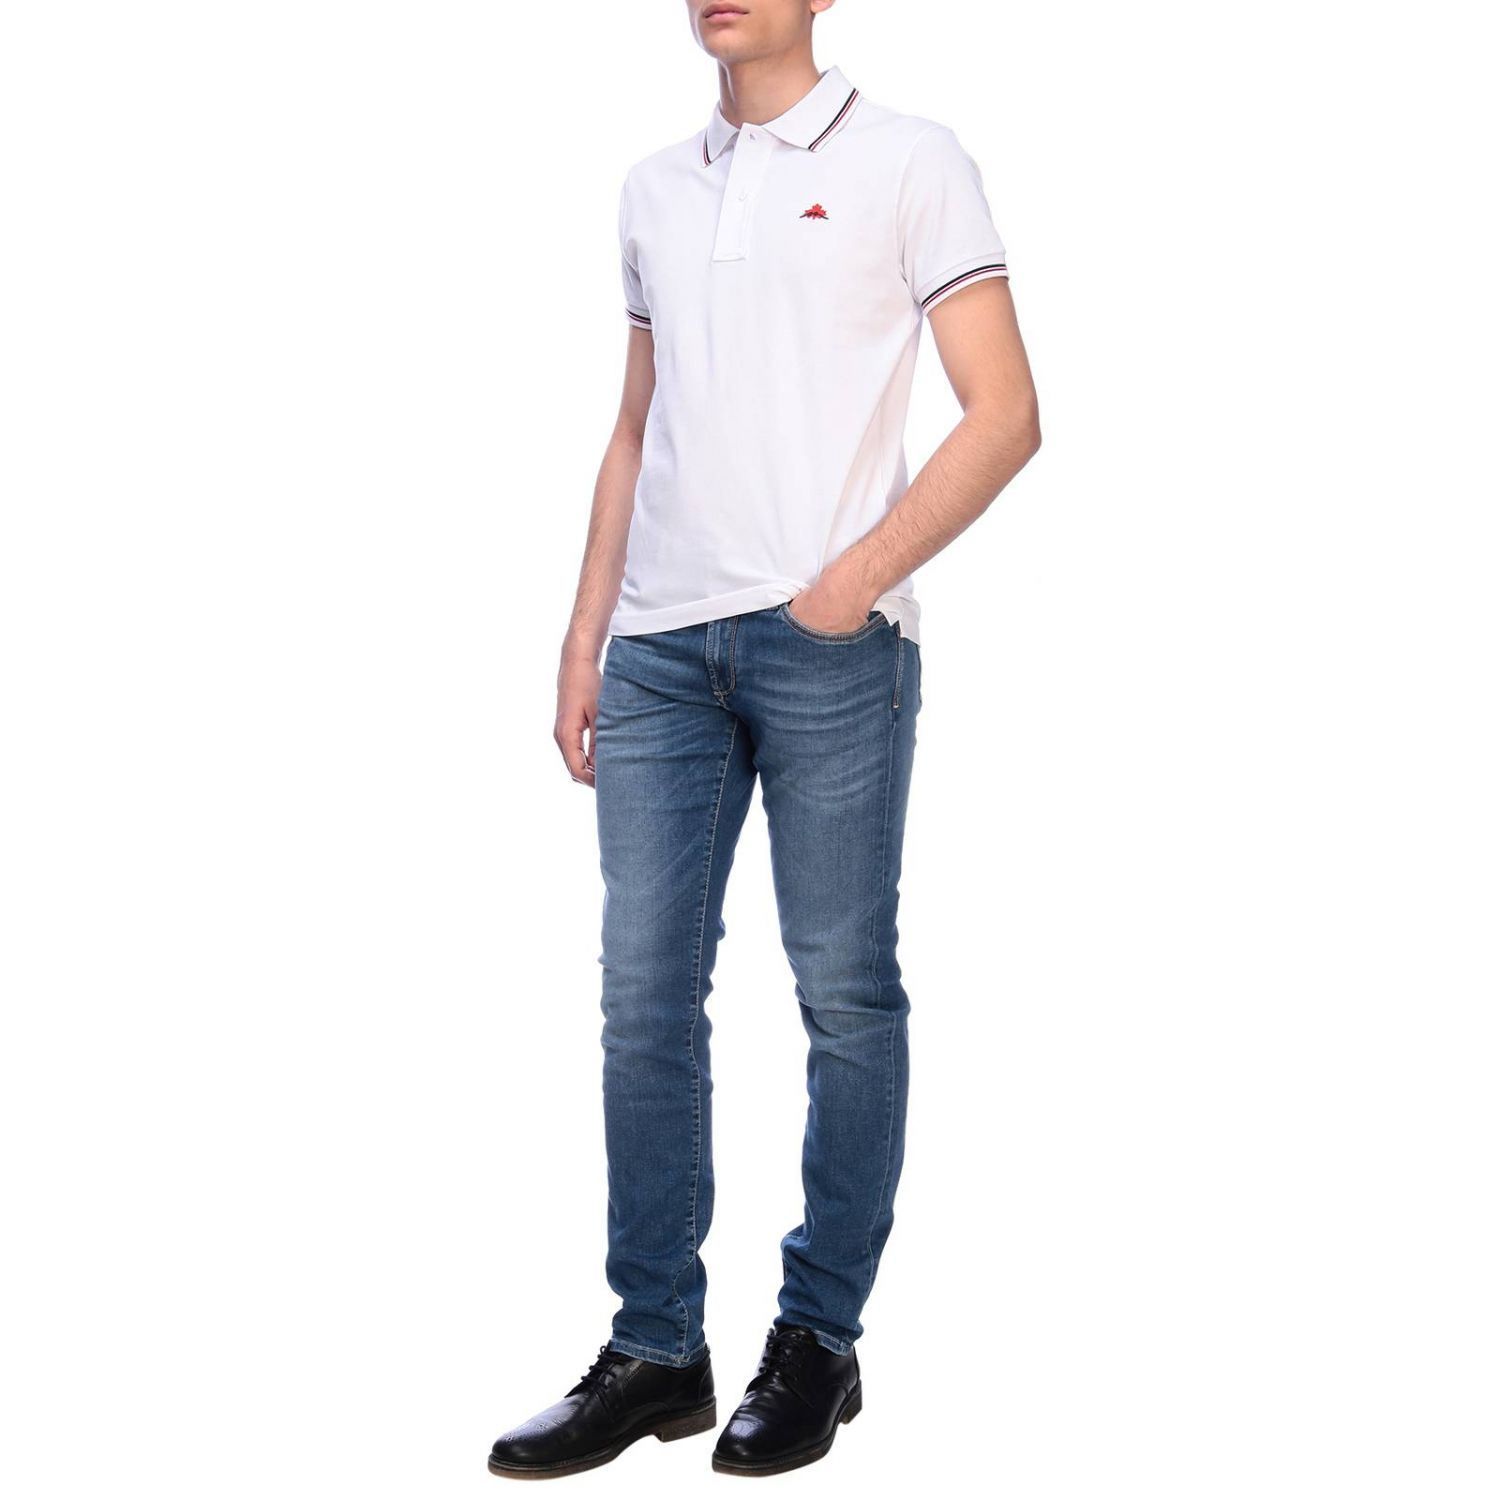 T-shirt men Museum white 4